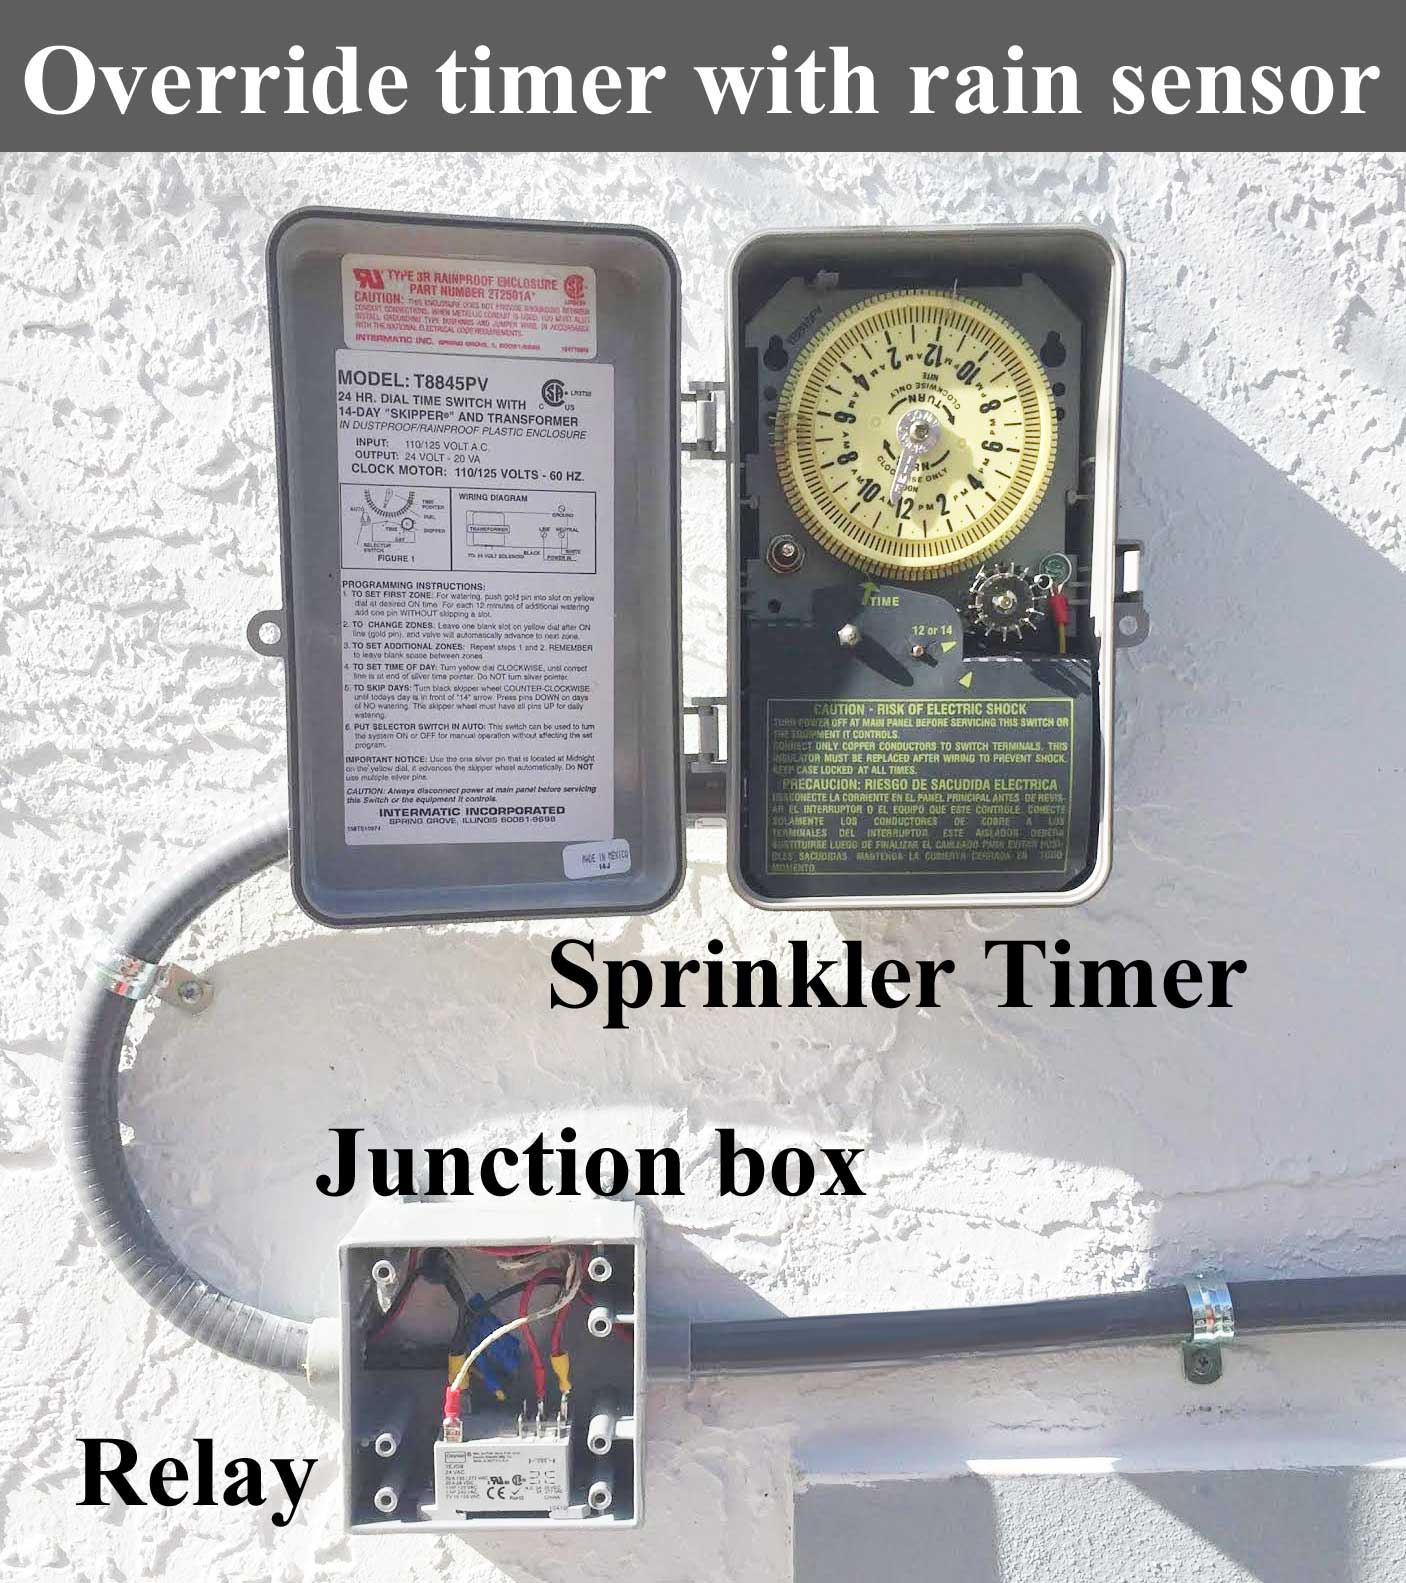 hight resolution of override sprinkler timer with rain sensor larger image